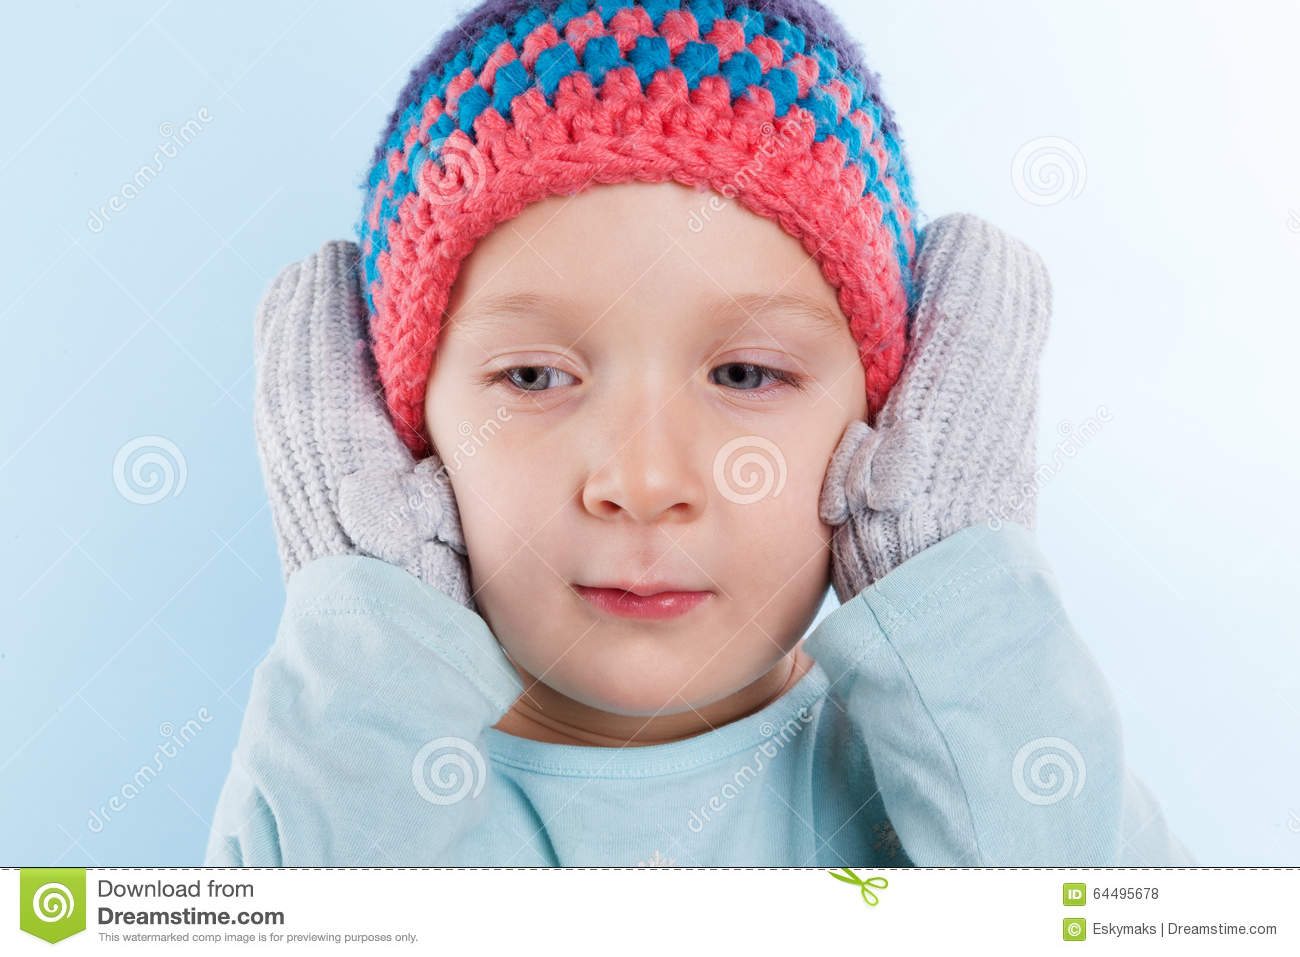 Cute baby girl winter. stock photo. Image of fashion - 64495678 ccac2359446